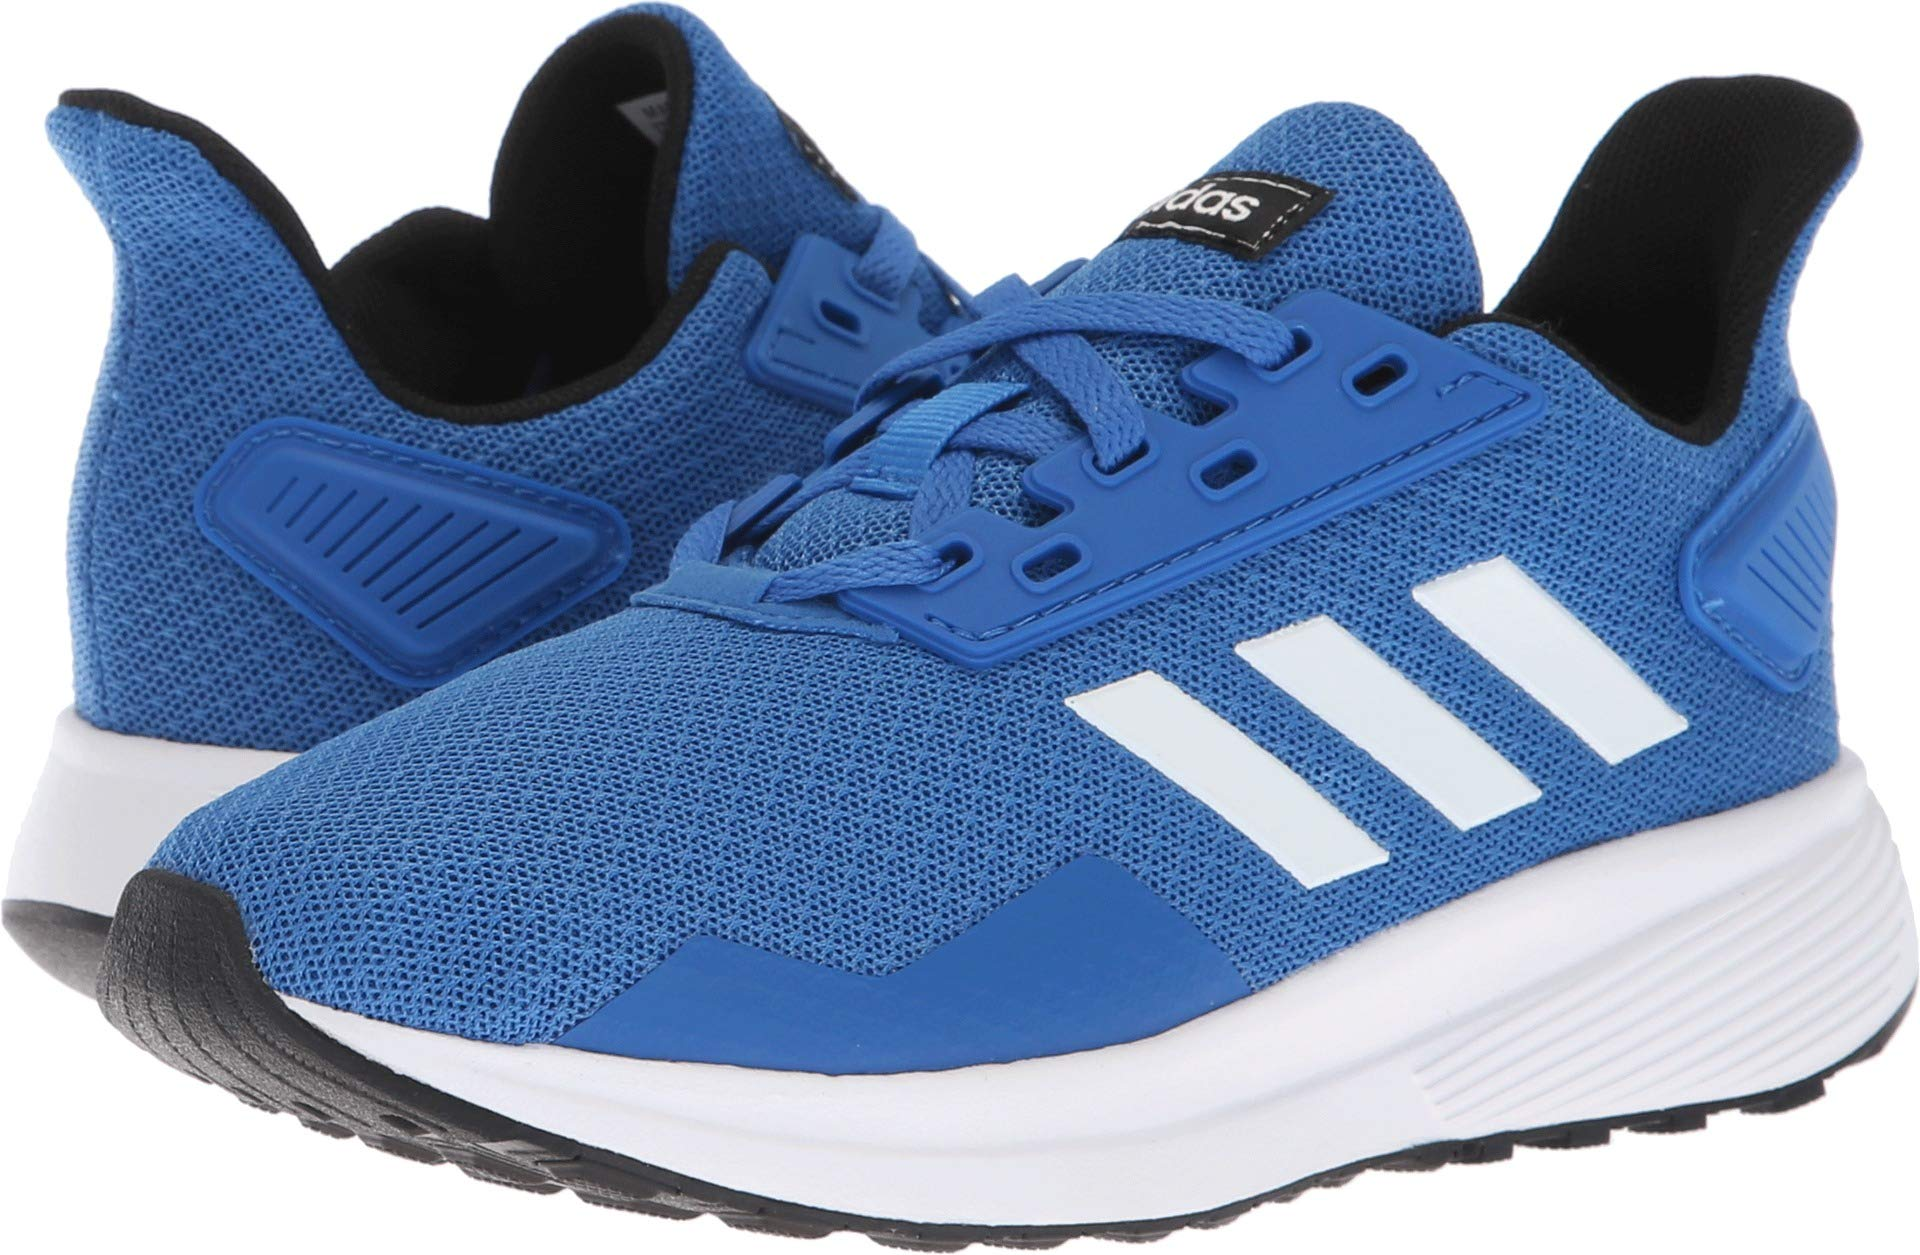 adidas Unisex-Kid's Duramo 9 Running Shoe, Blue/White/Black, 1.5 by adidas